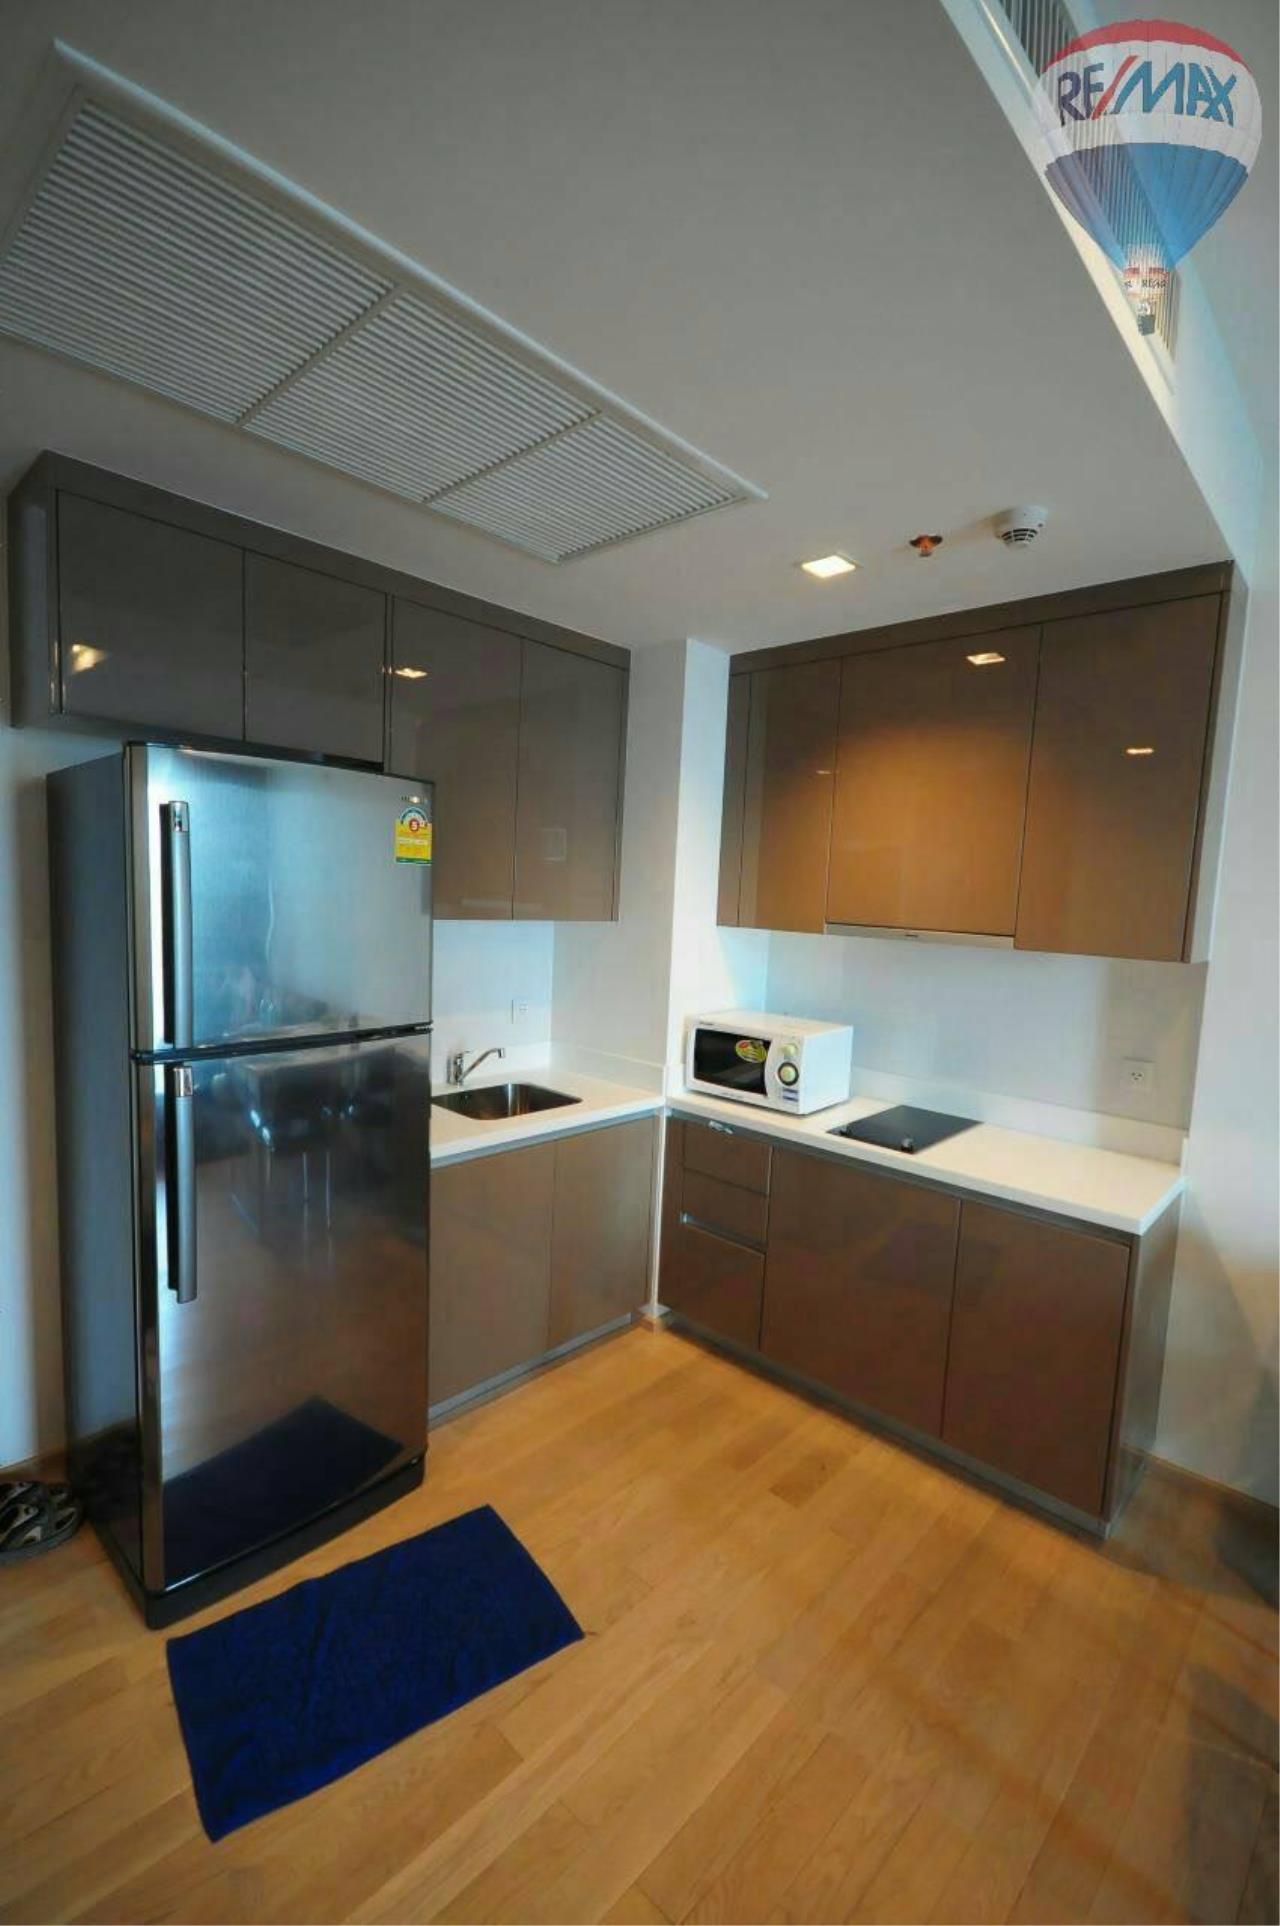 RE/MAX Properties Agency's 1 Bedroom for SALE 52 Sq.M. in Siri at Sukhumvit 7